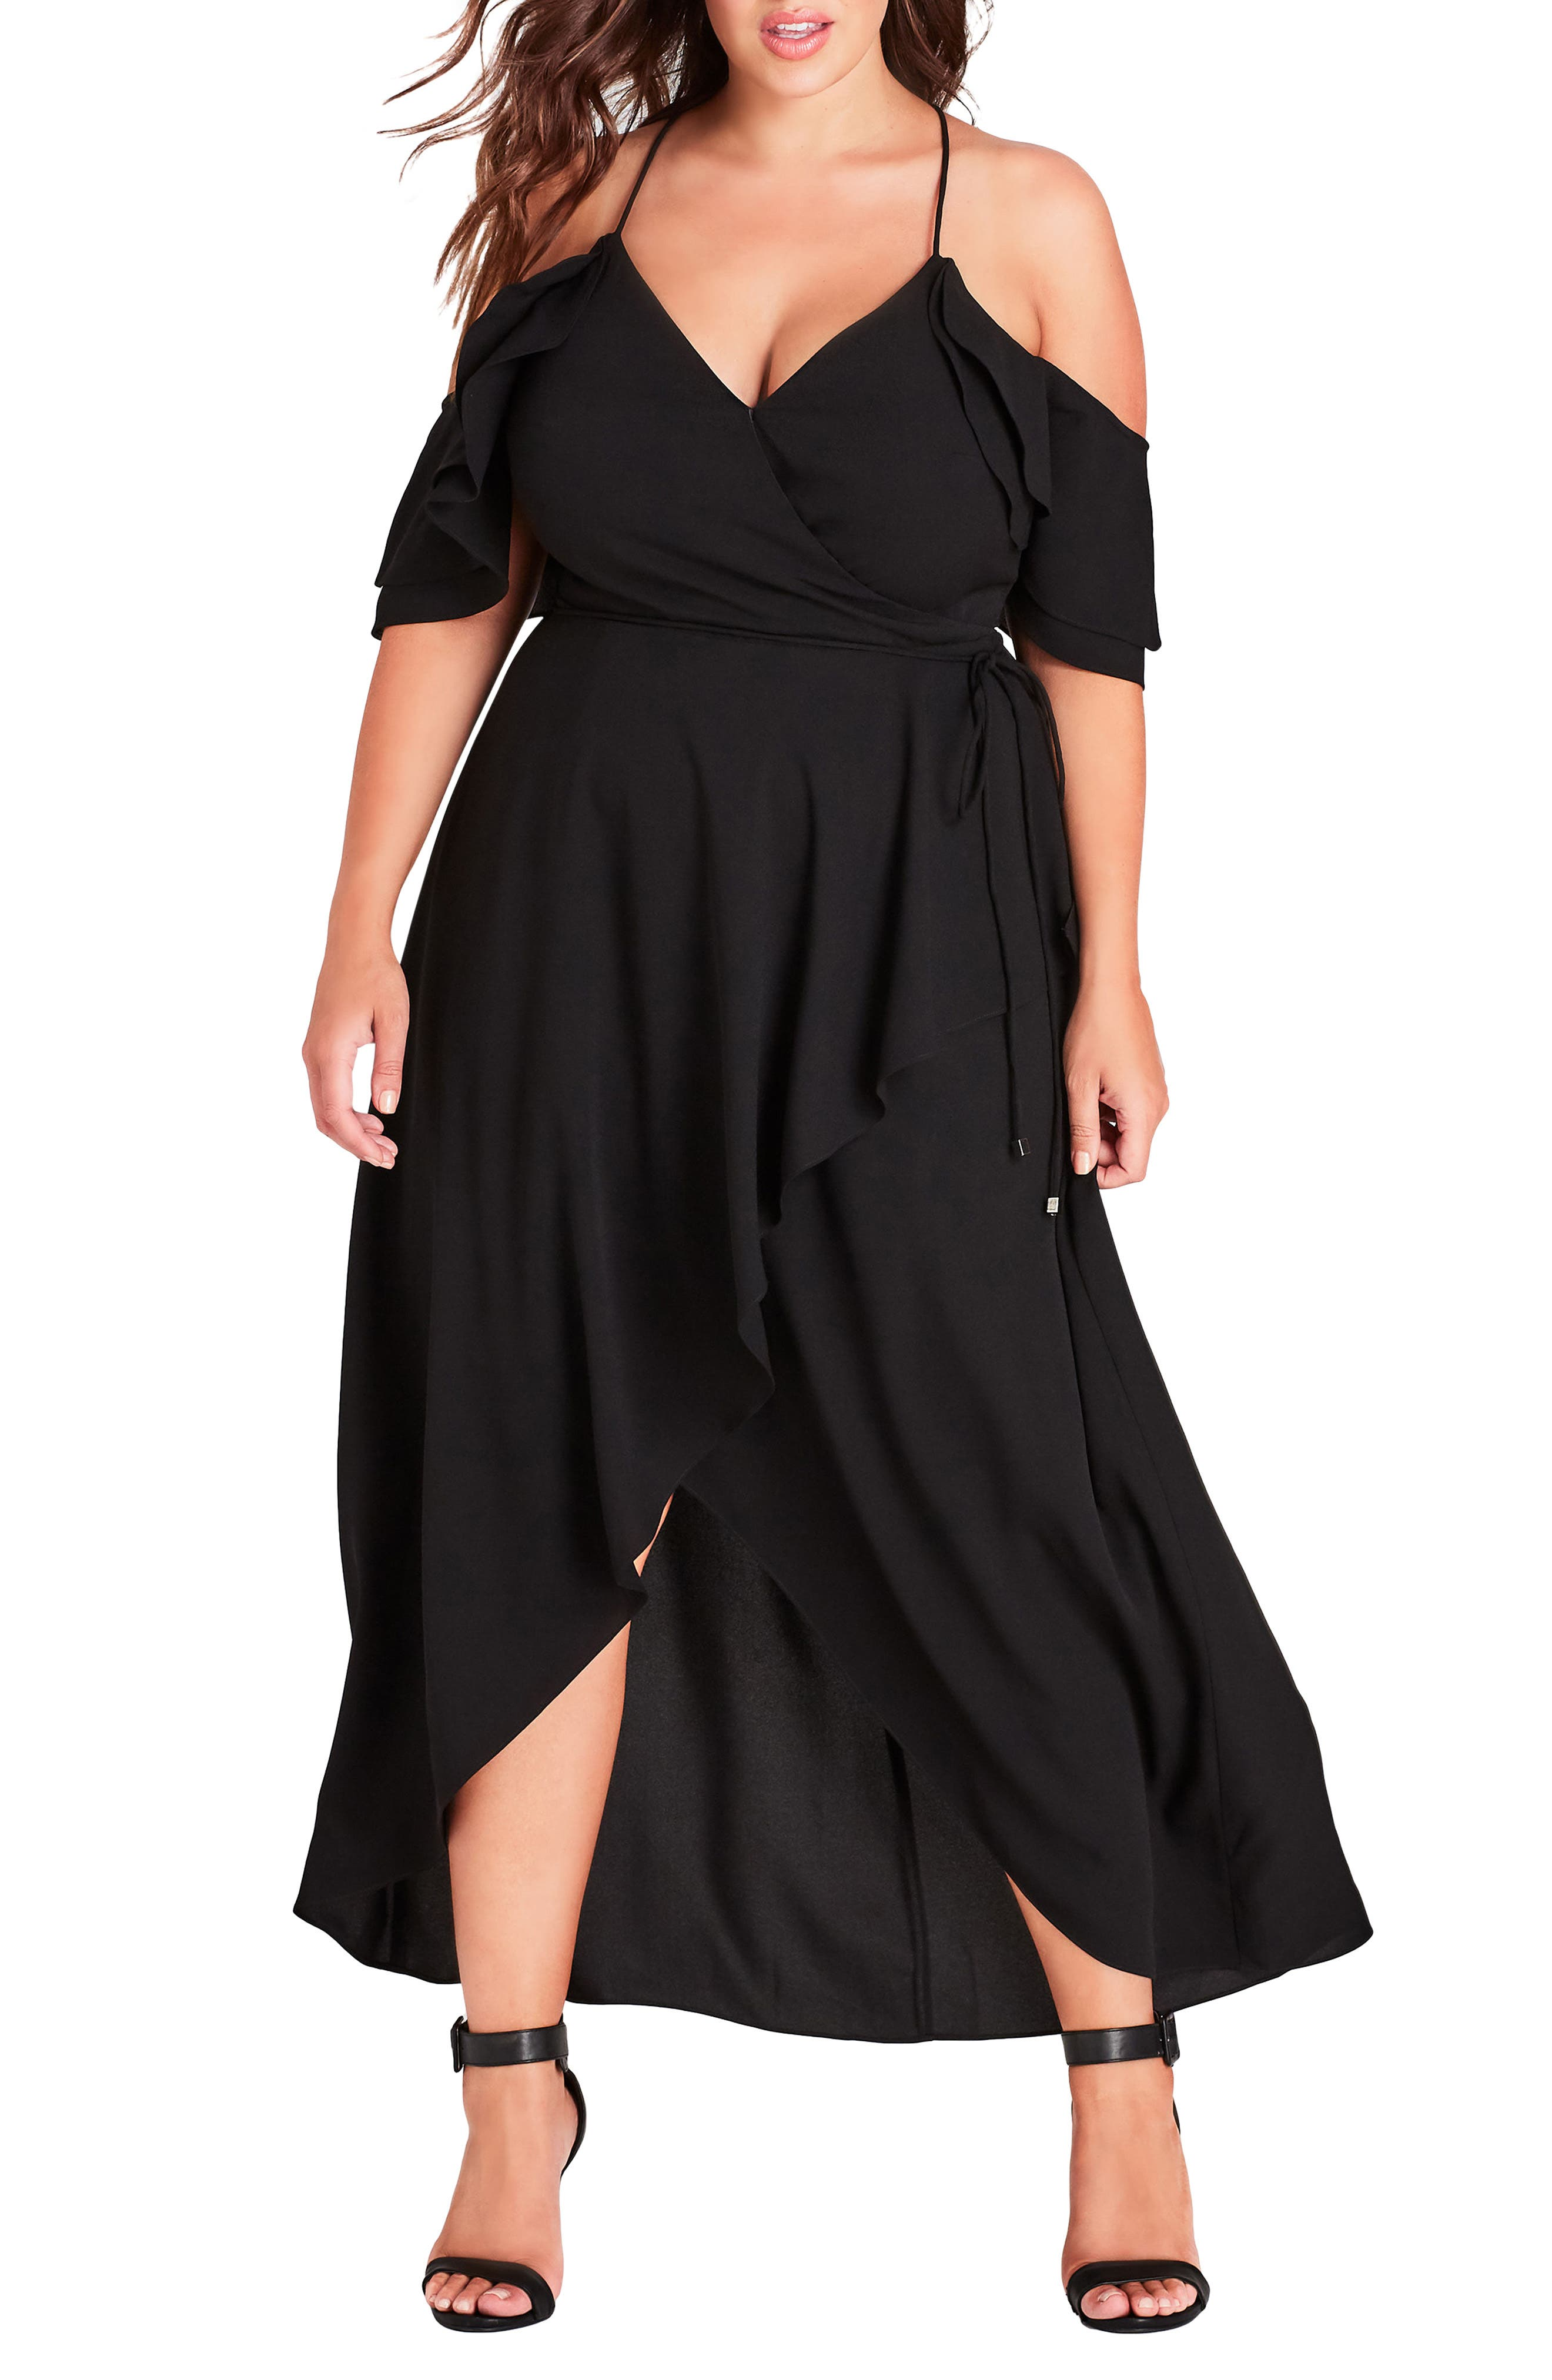 Alternate Image 1 Selected - City Chic Miss Jessica Maxi Dress (Plus Size)